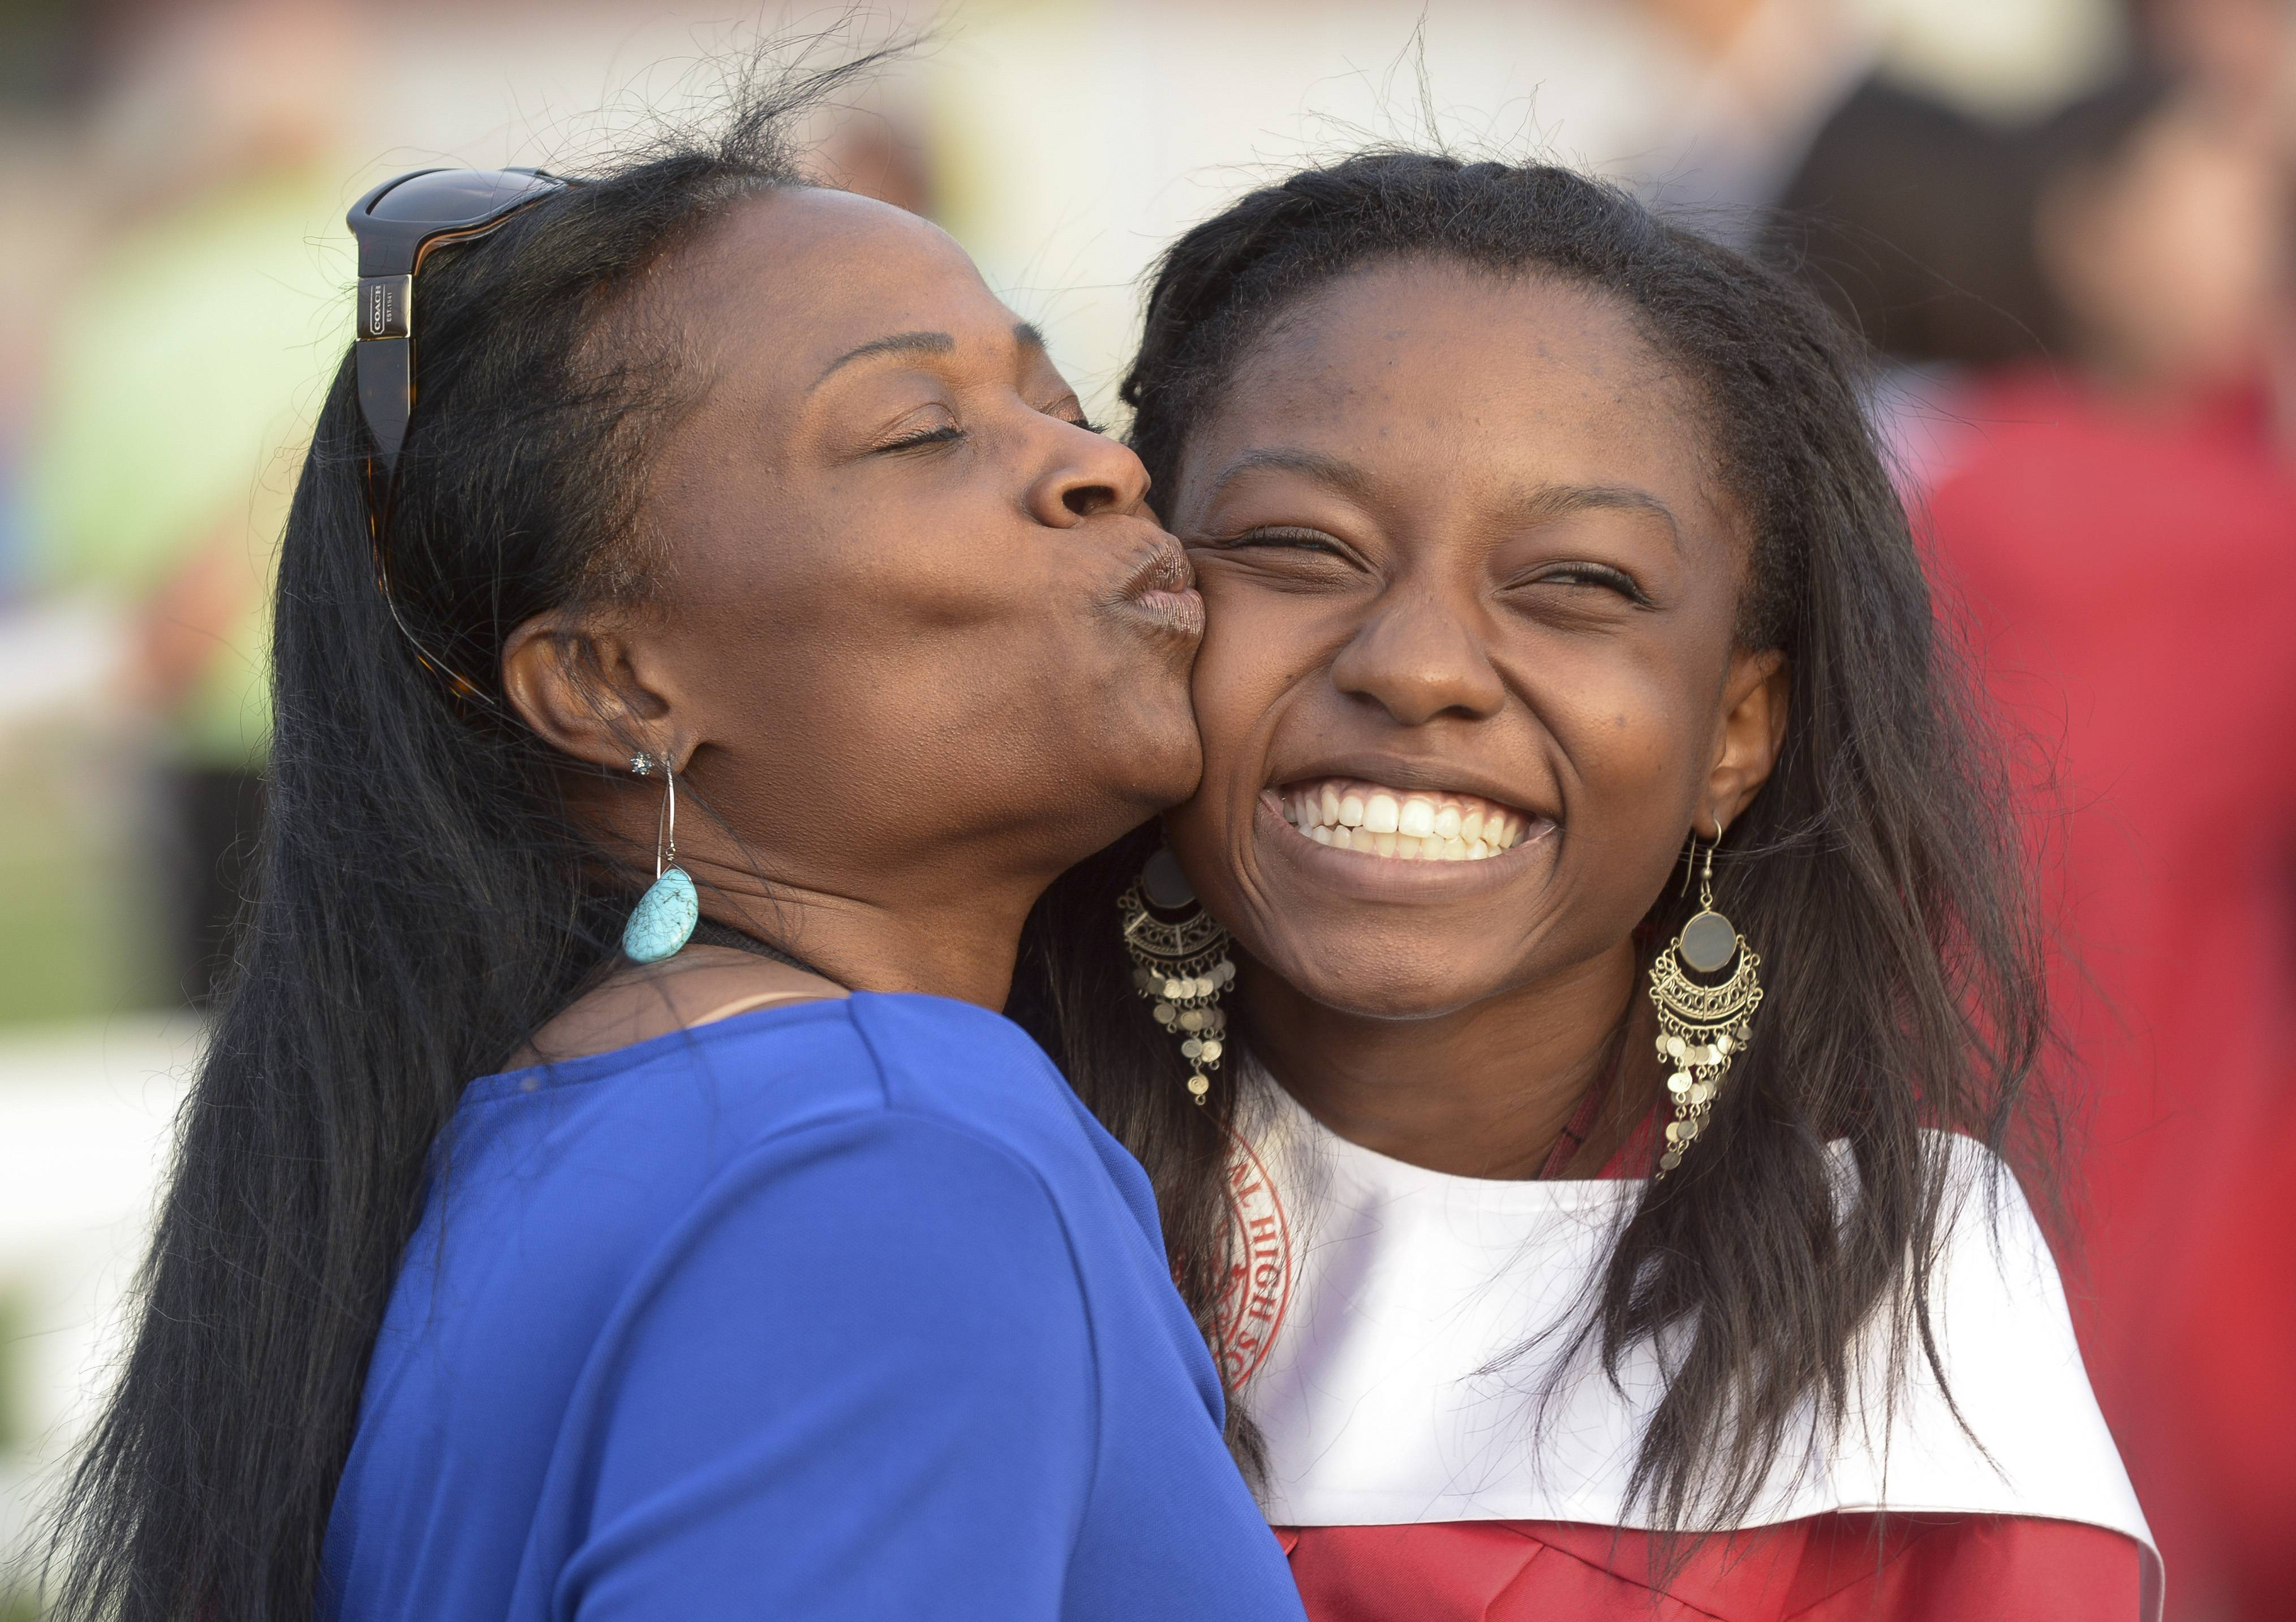 Mechelle Thomas gives her daughter Chelsea a kiss while having their photo taken, after the Naperville Central High School graduation Wednesday, May 28 at the school's football field.